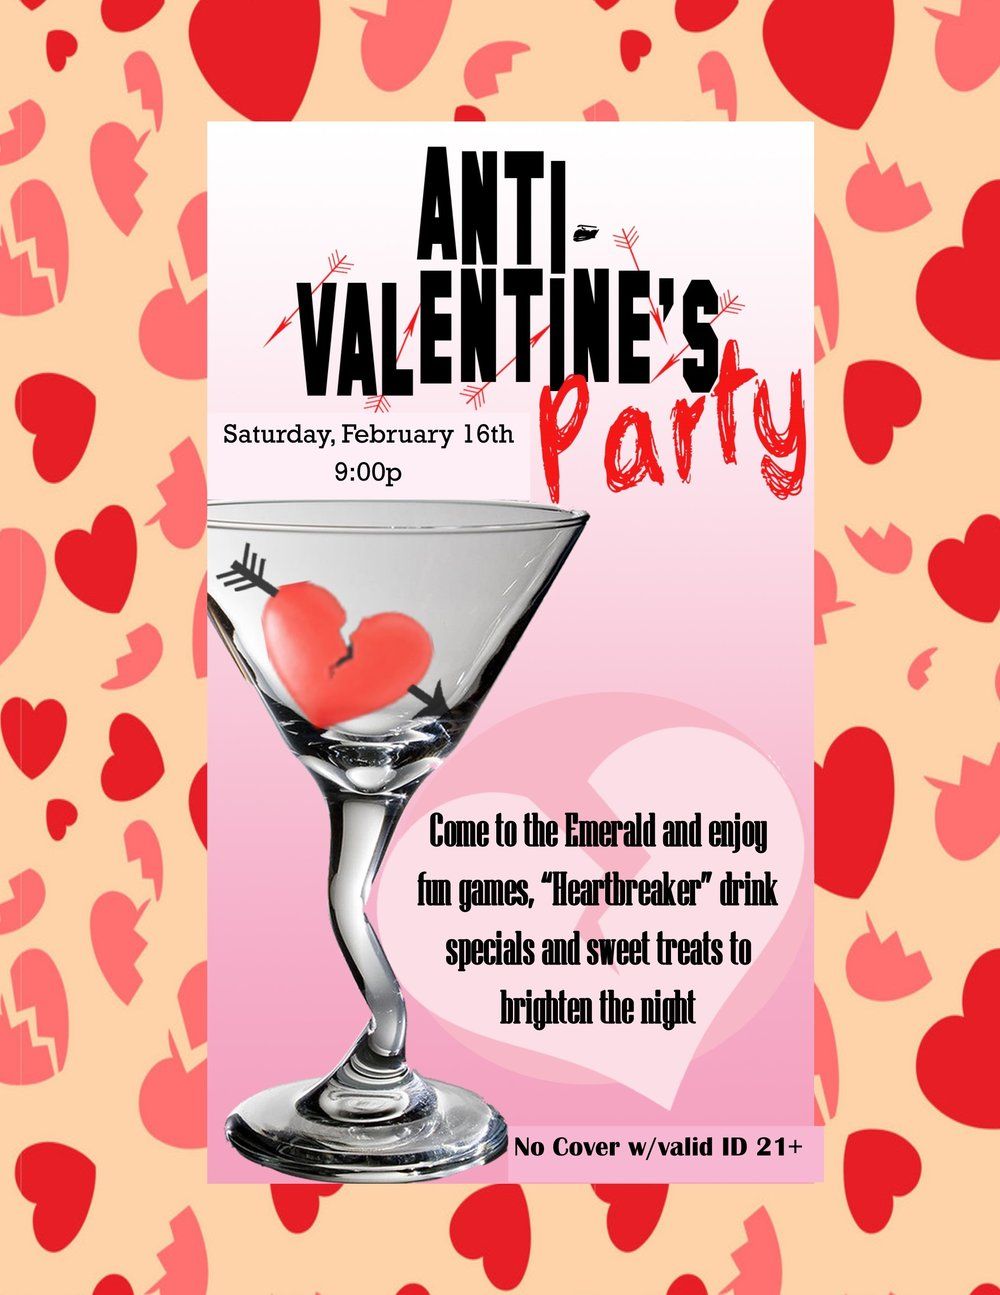 Anti-Valentine's Day - A party to celebrate being single and awesome!.Karaoke with Amber to maintain the flow.